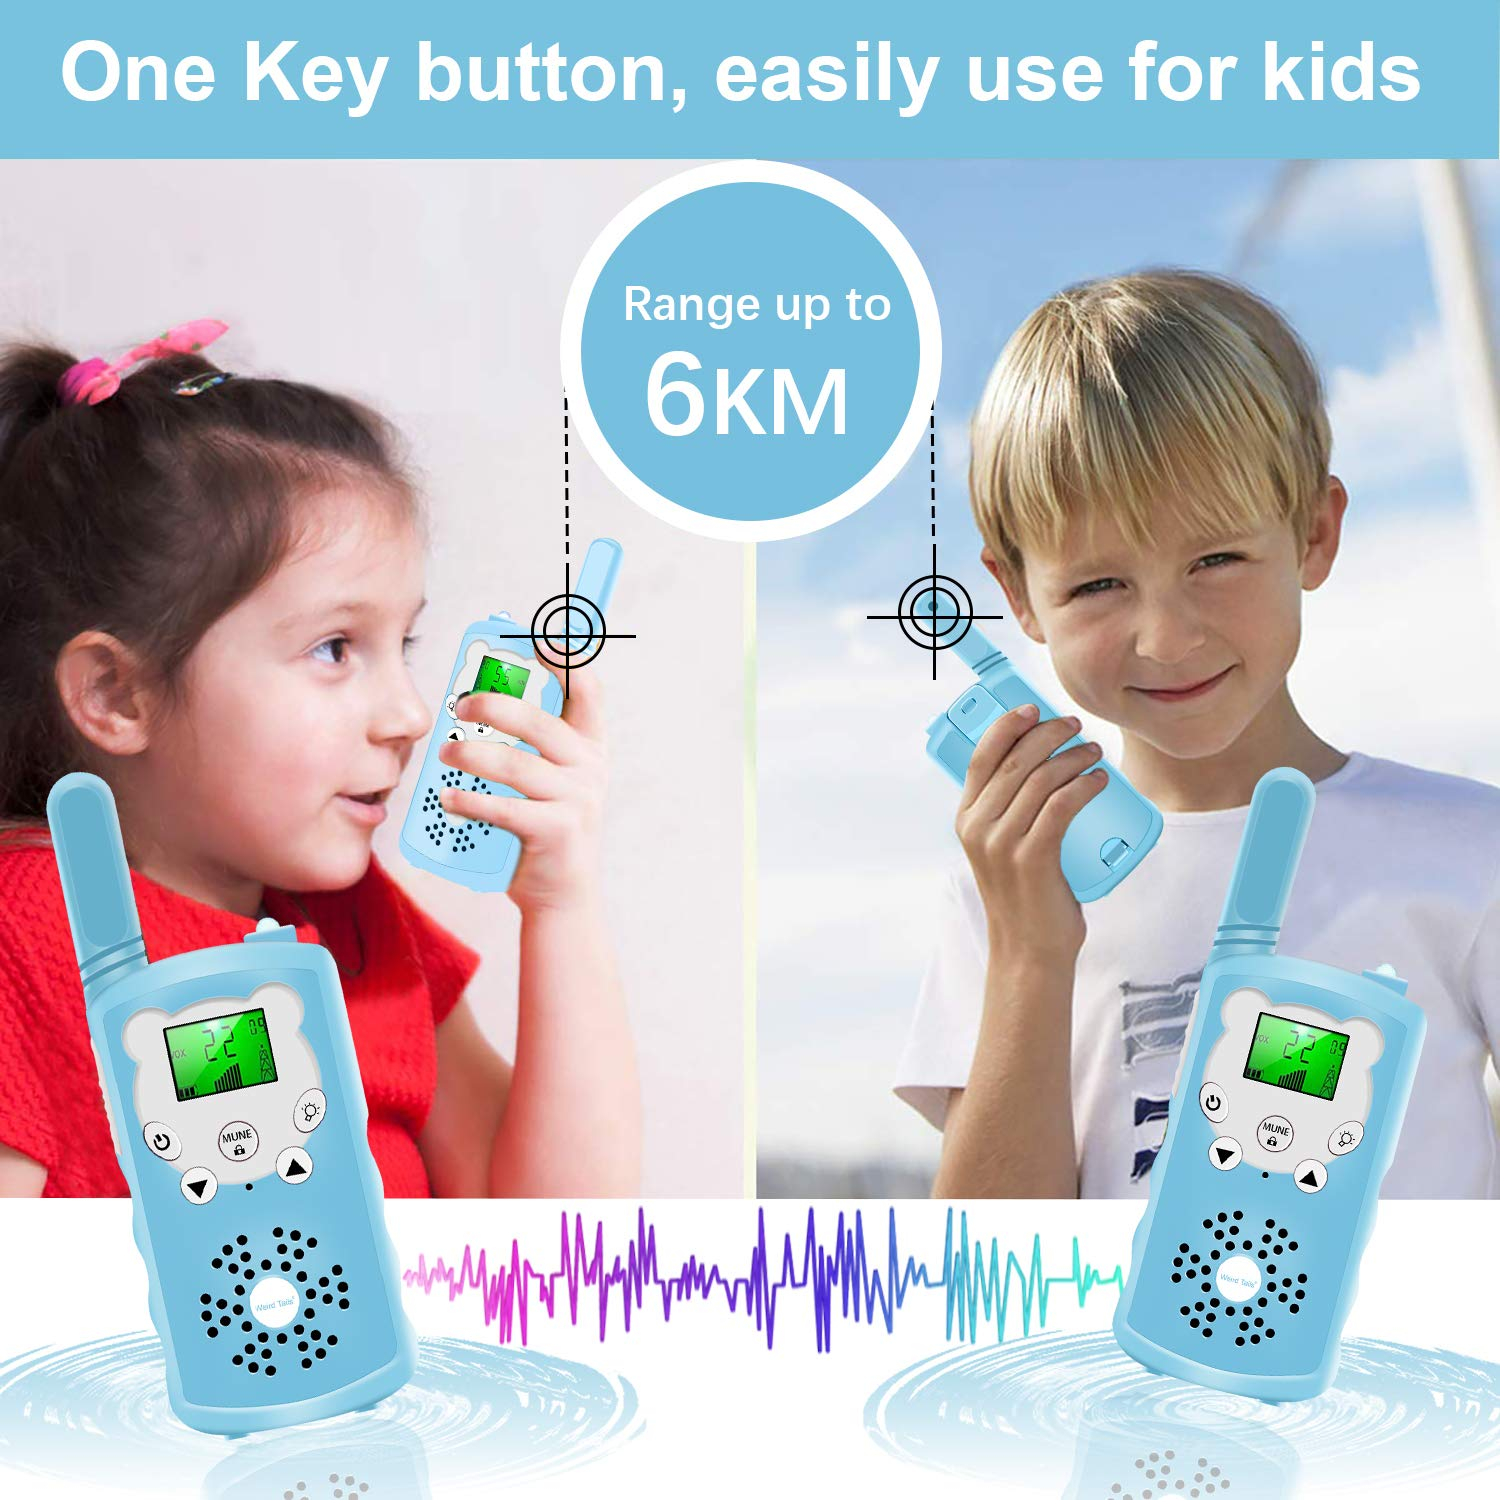 Walkie talkies for Kids - 4-Mile Range Kids walkie talkies with 22 FRS/GMRS Channels, Childrens Toys with BPA-Free ABS eco-Friendly Materials, Great Gift for 3-12 Year Old Boys and Girls,Teen Gift by weird tails (Image #3)